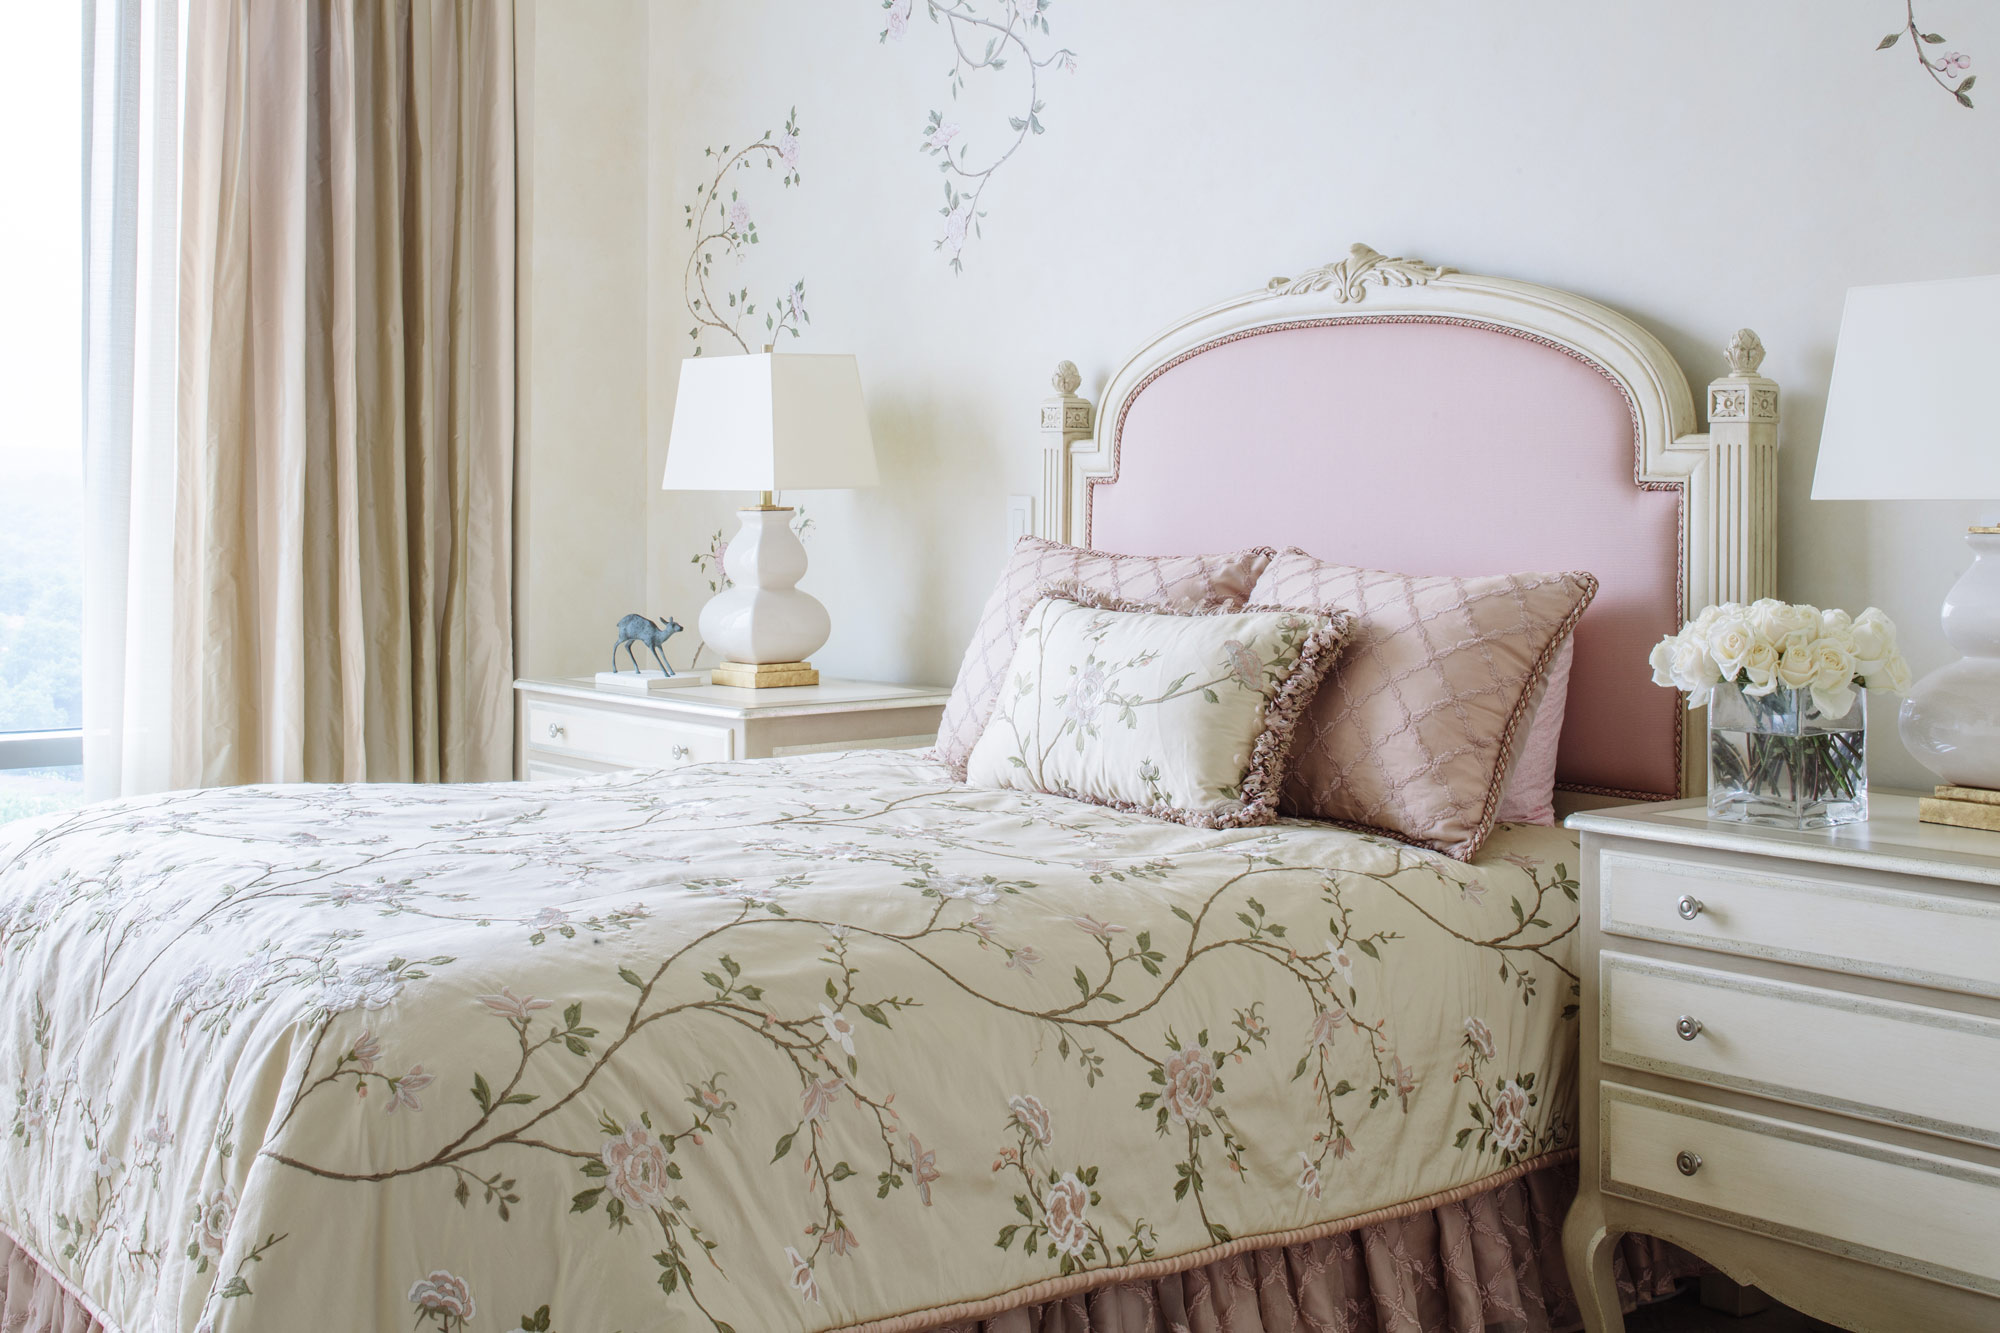 Victoria+Sanchez+Washington+Interior+Designer+floral-bedroom.jpg